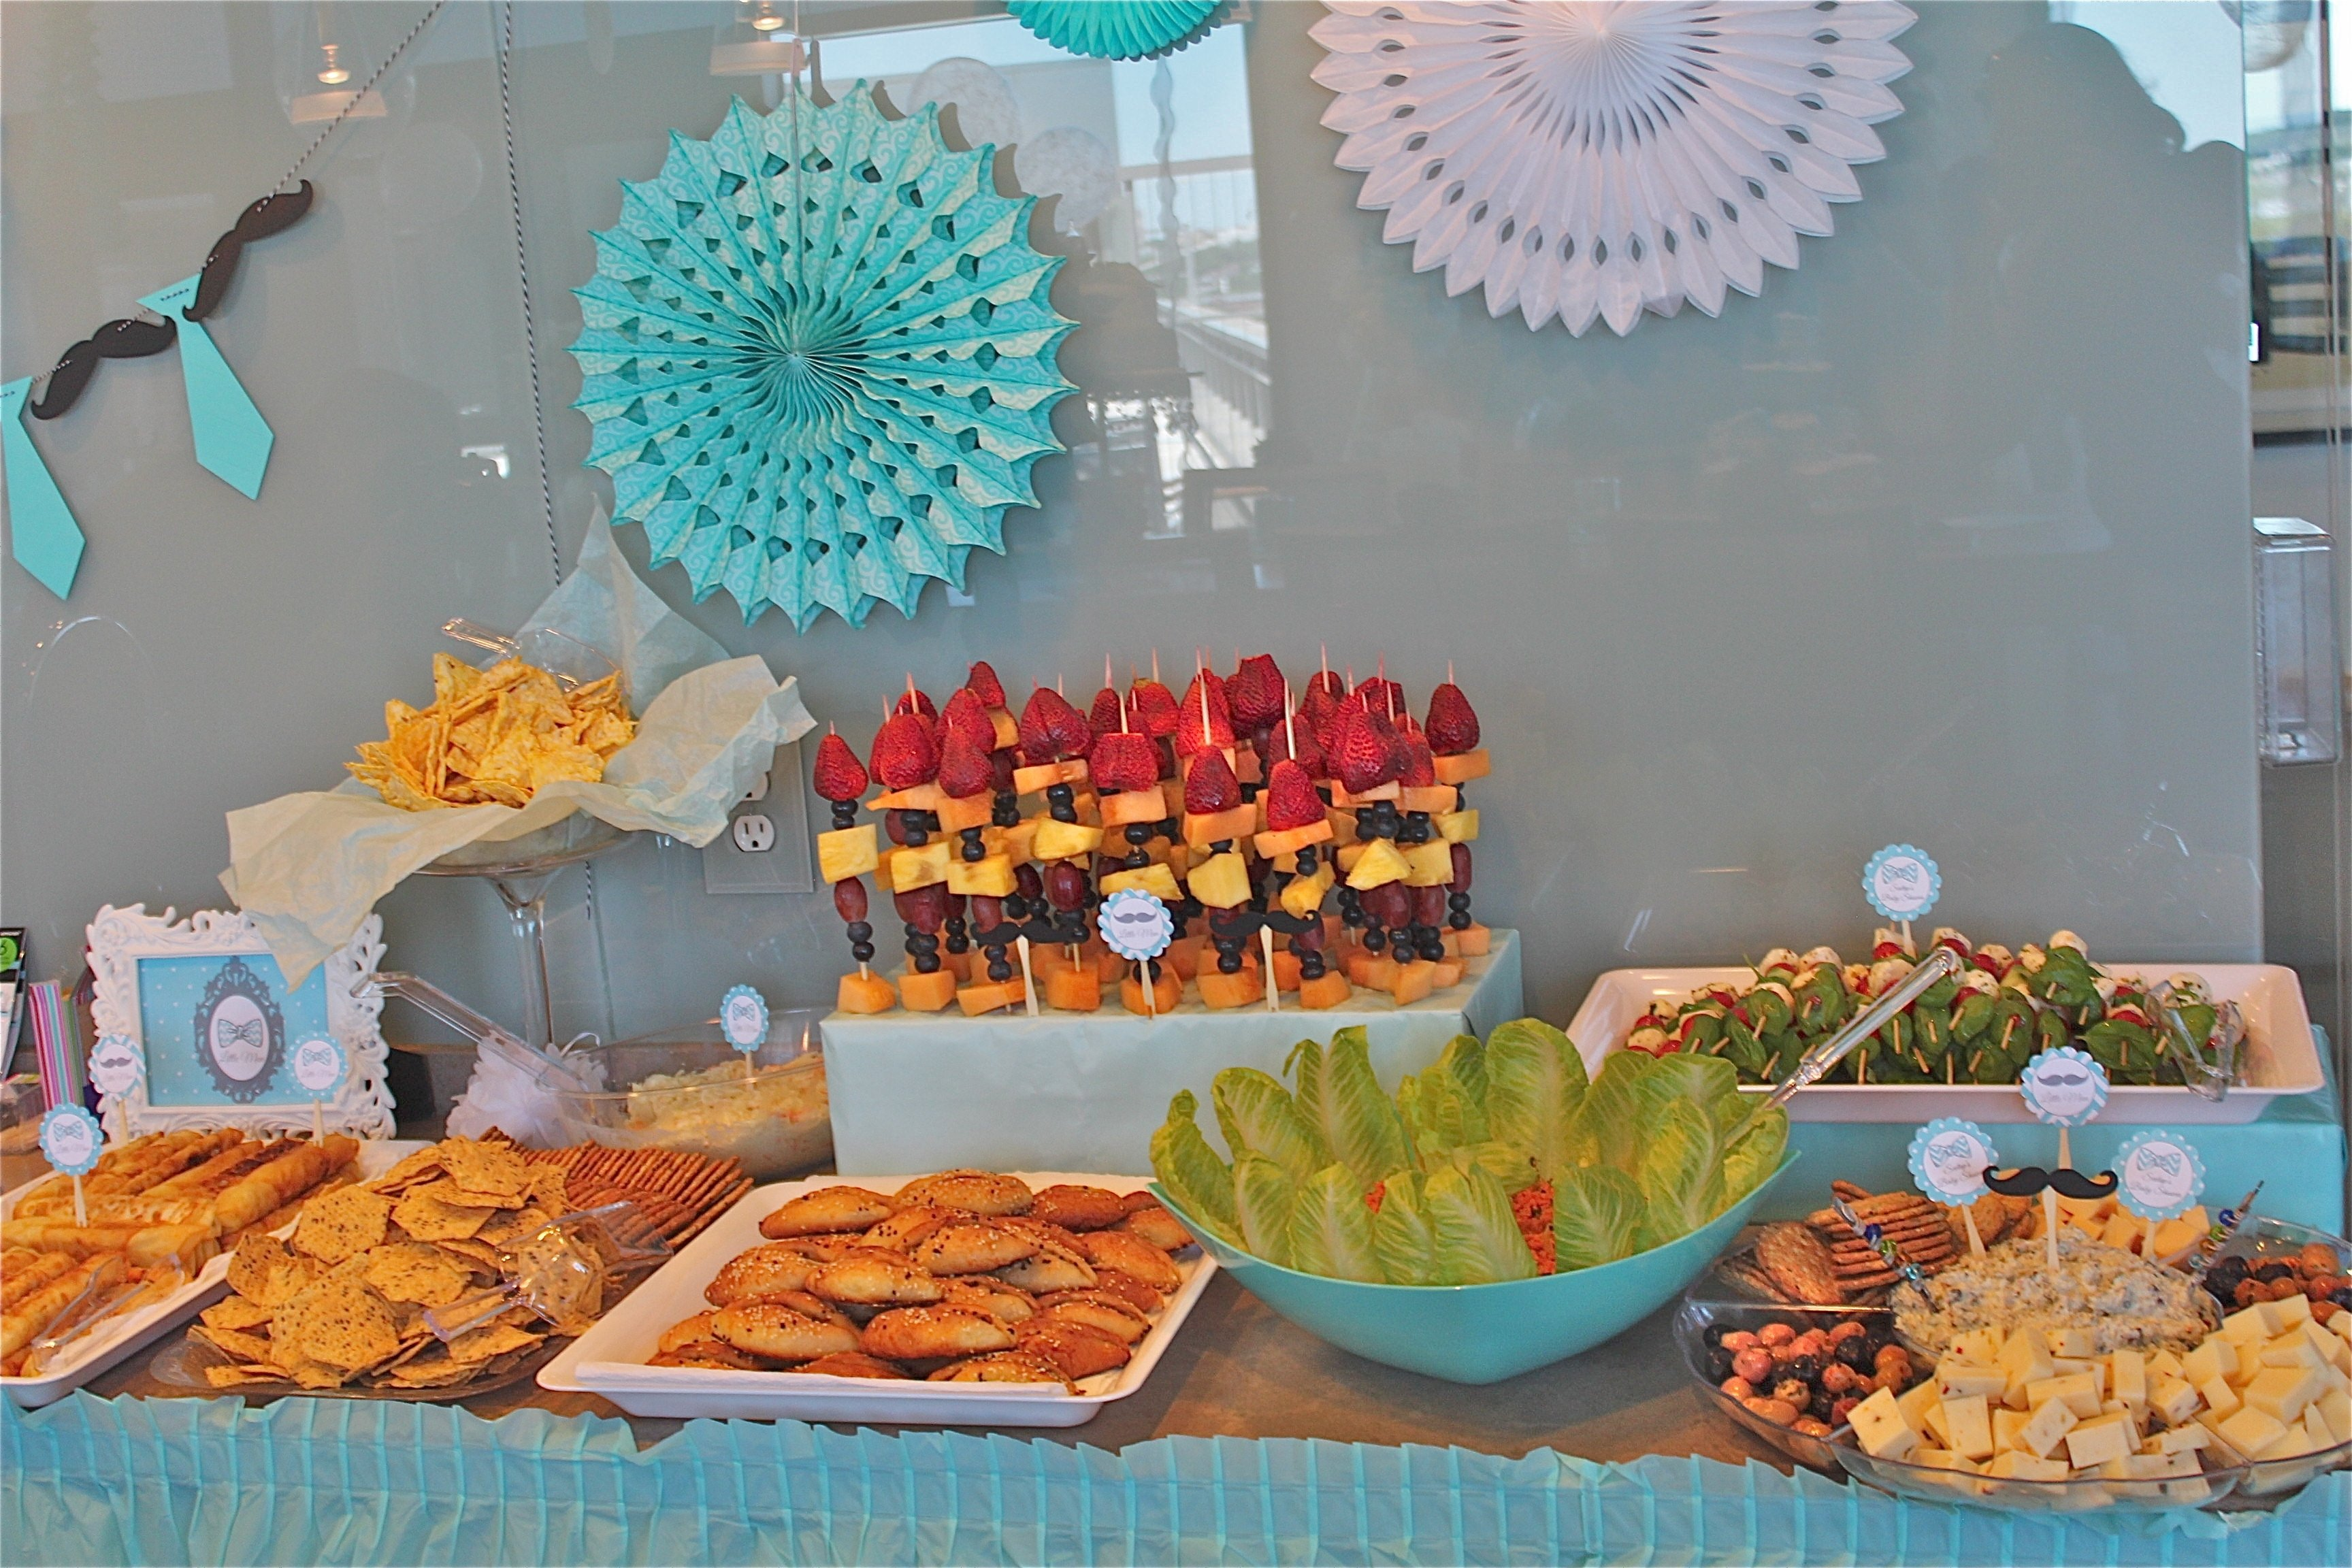 10 Stunning Baby Shower Food Ideas For Boy baby shower food ideas for a boy omega center ideas for baby 2020